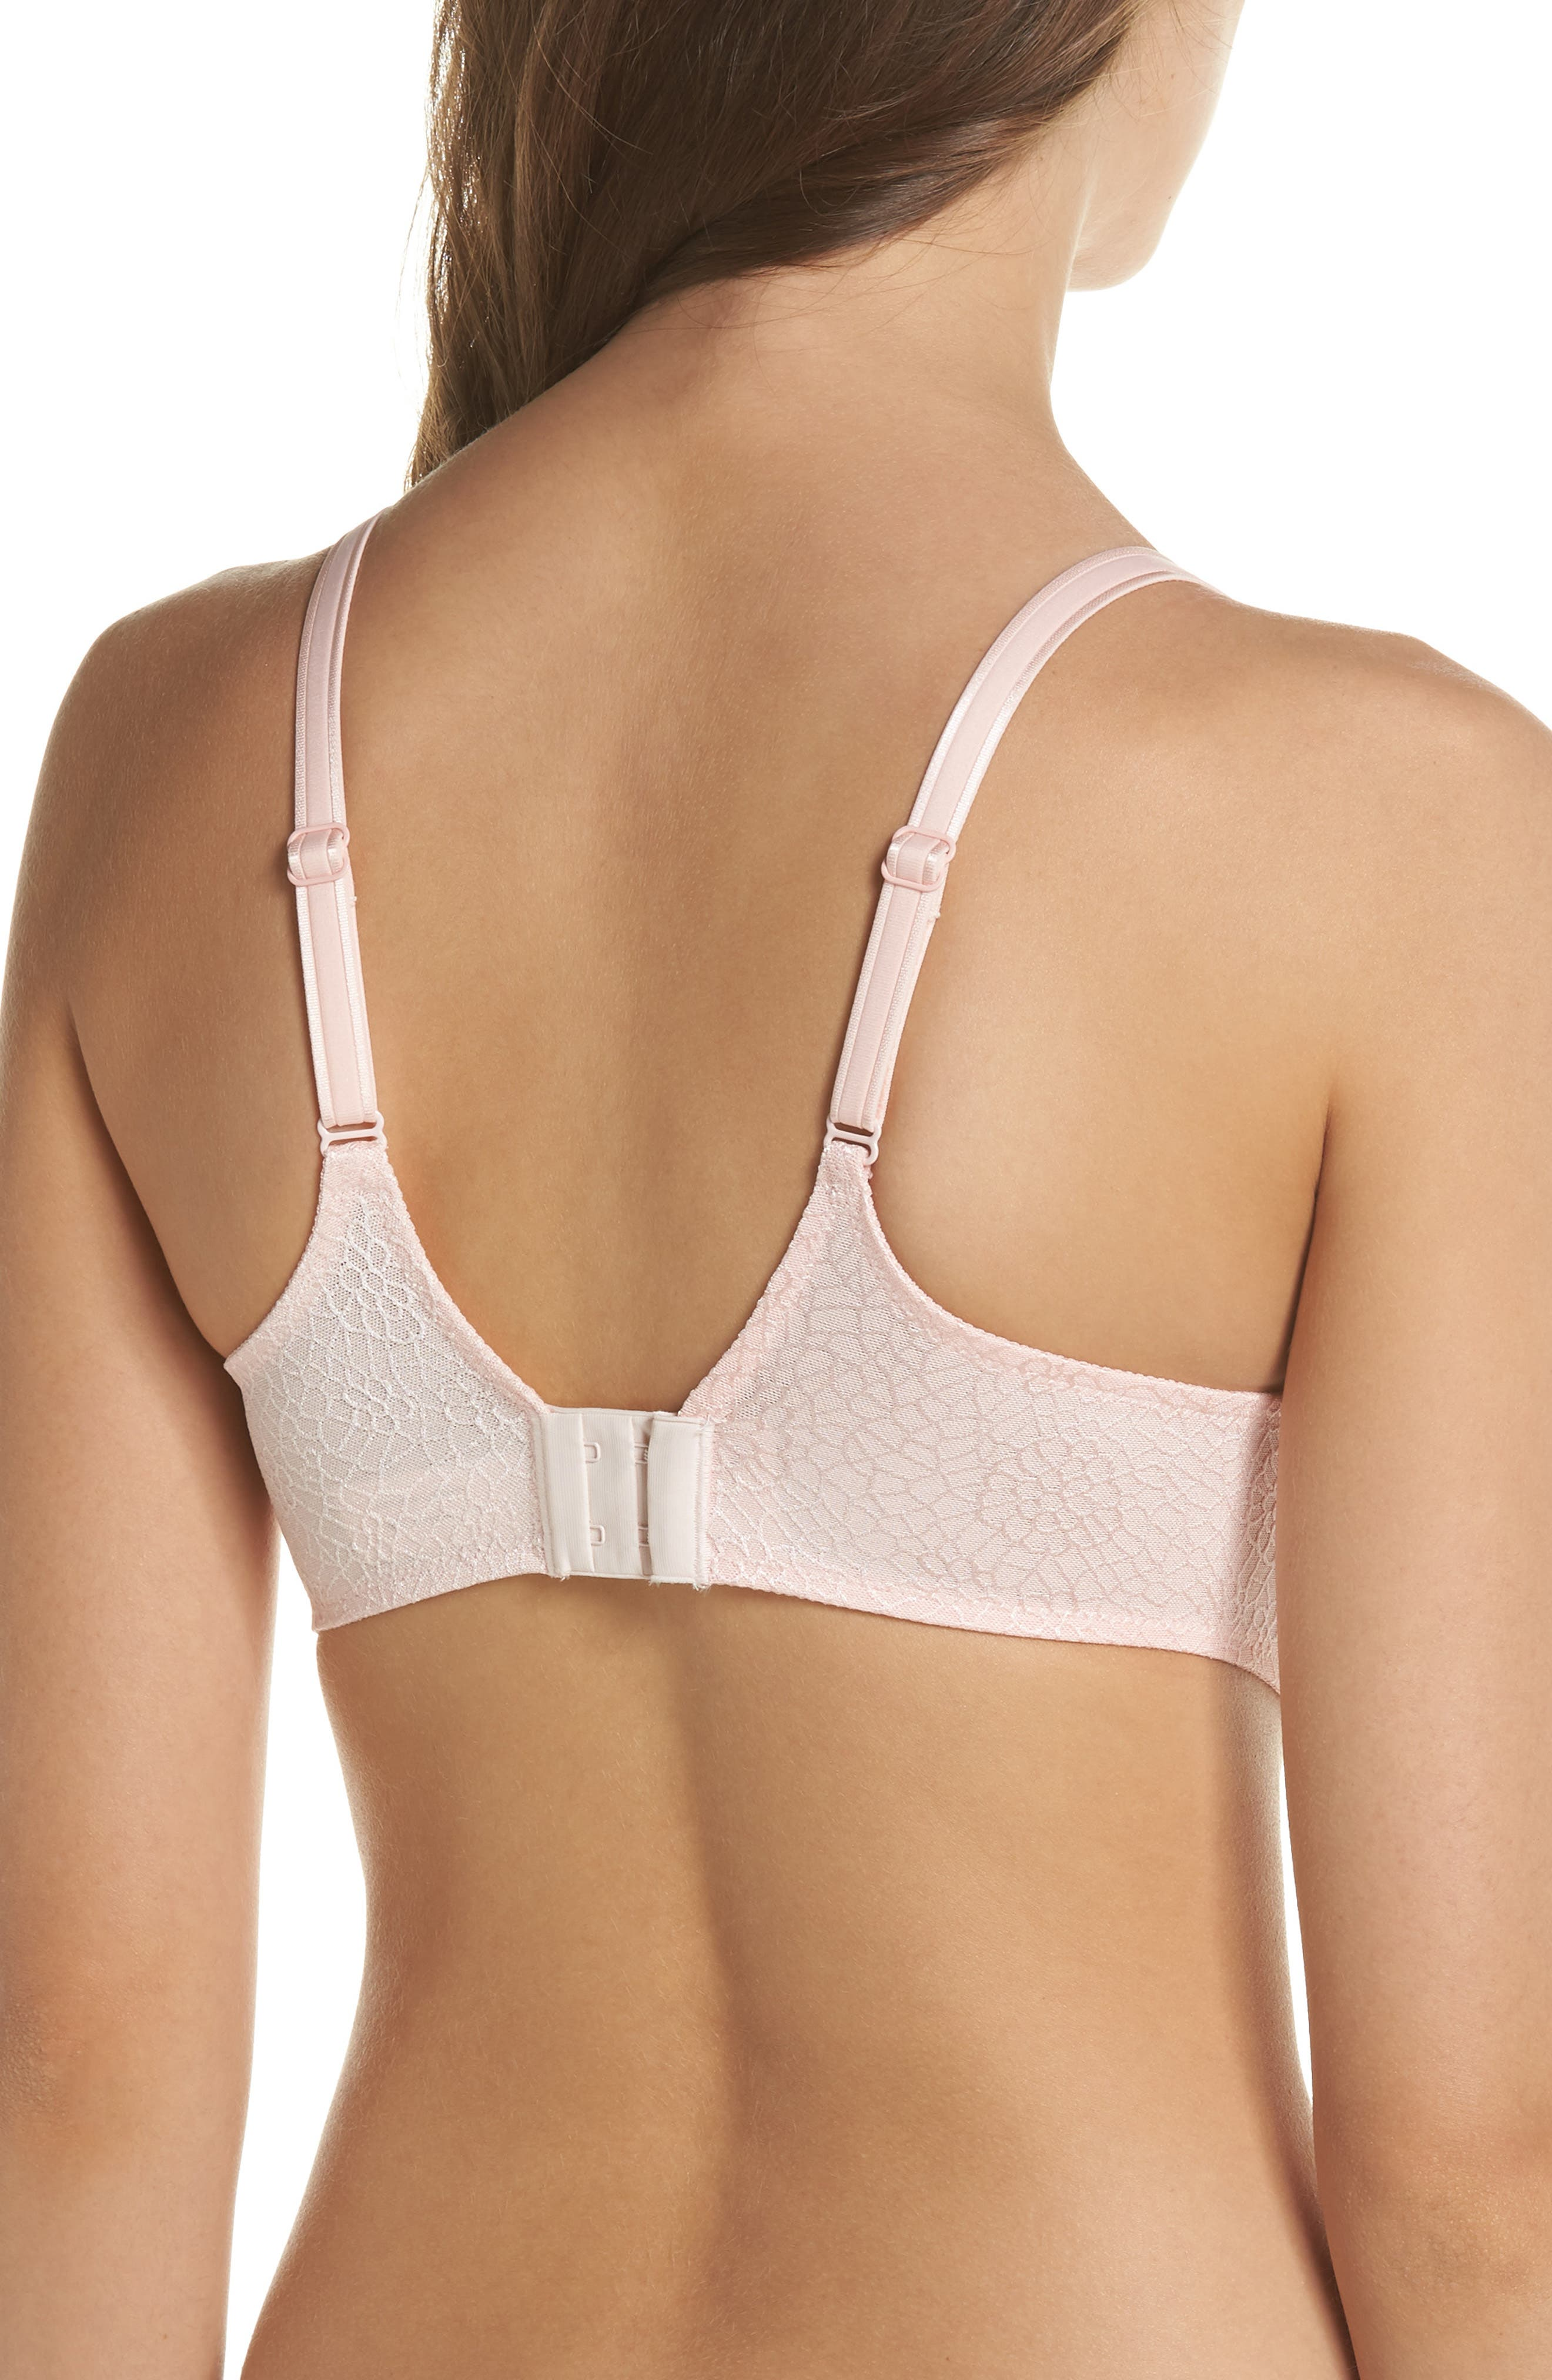 C Magnifique Underwire Spacer Bra,                             Alternate thumbnail 2, color,                             BLUSHING PINK